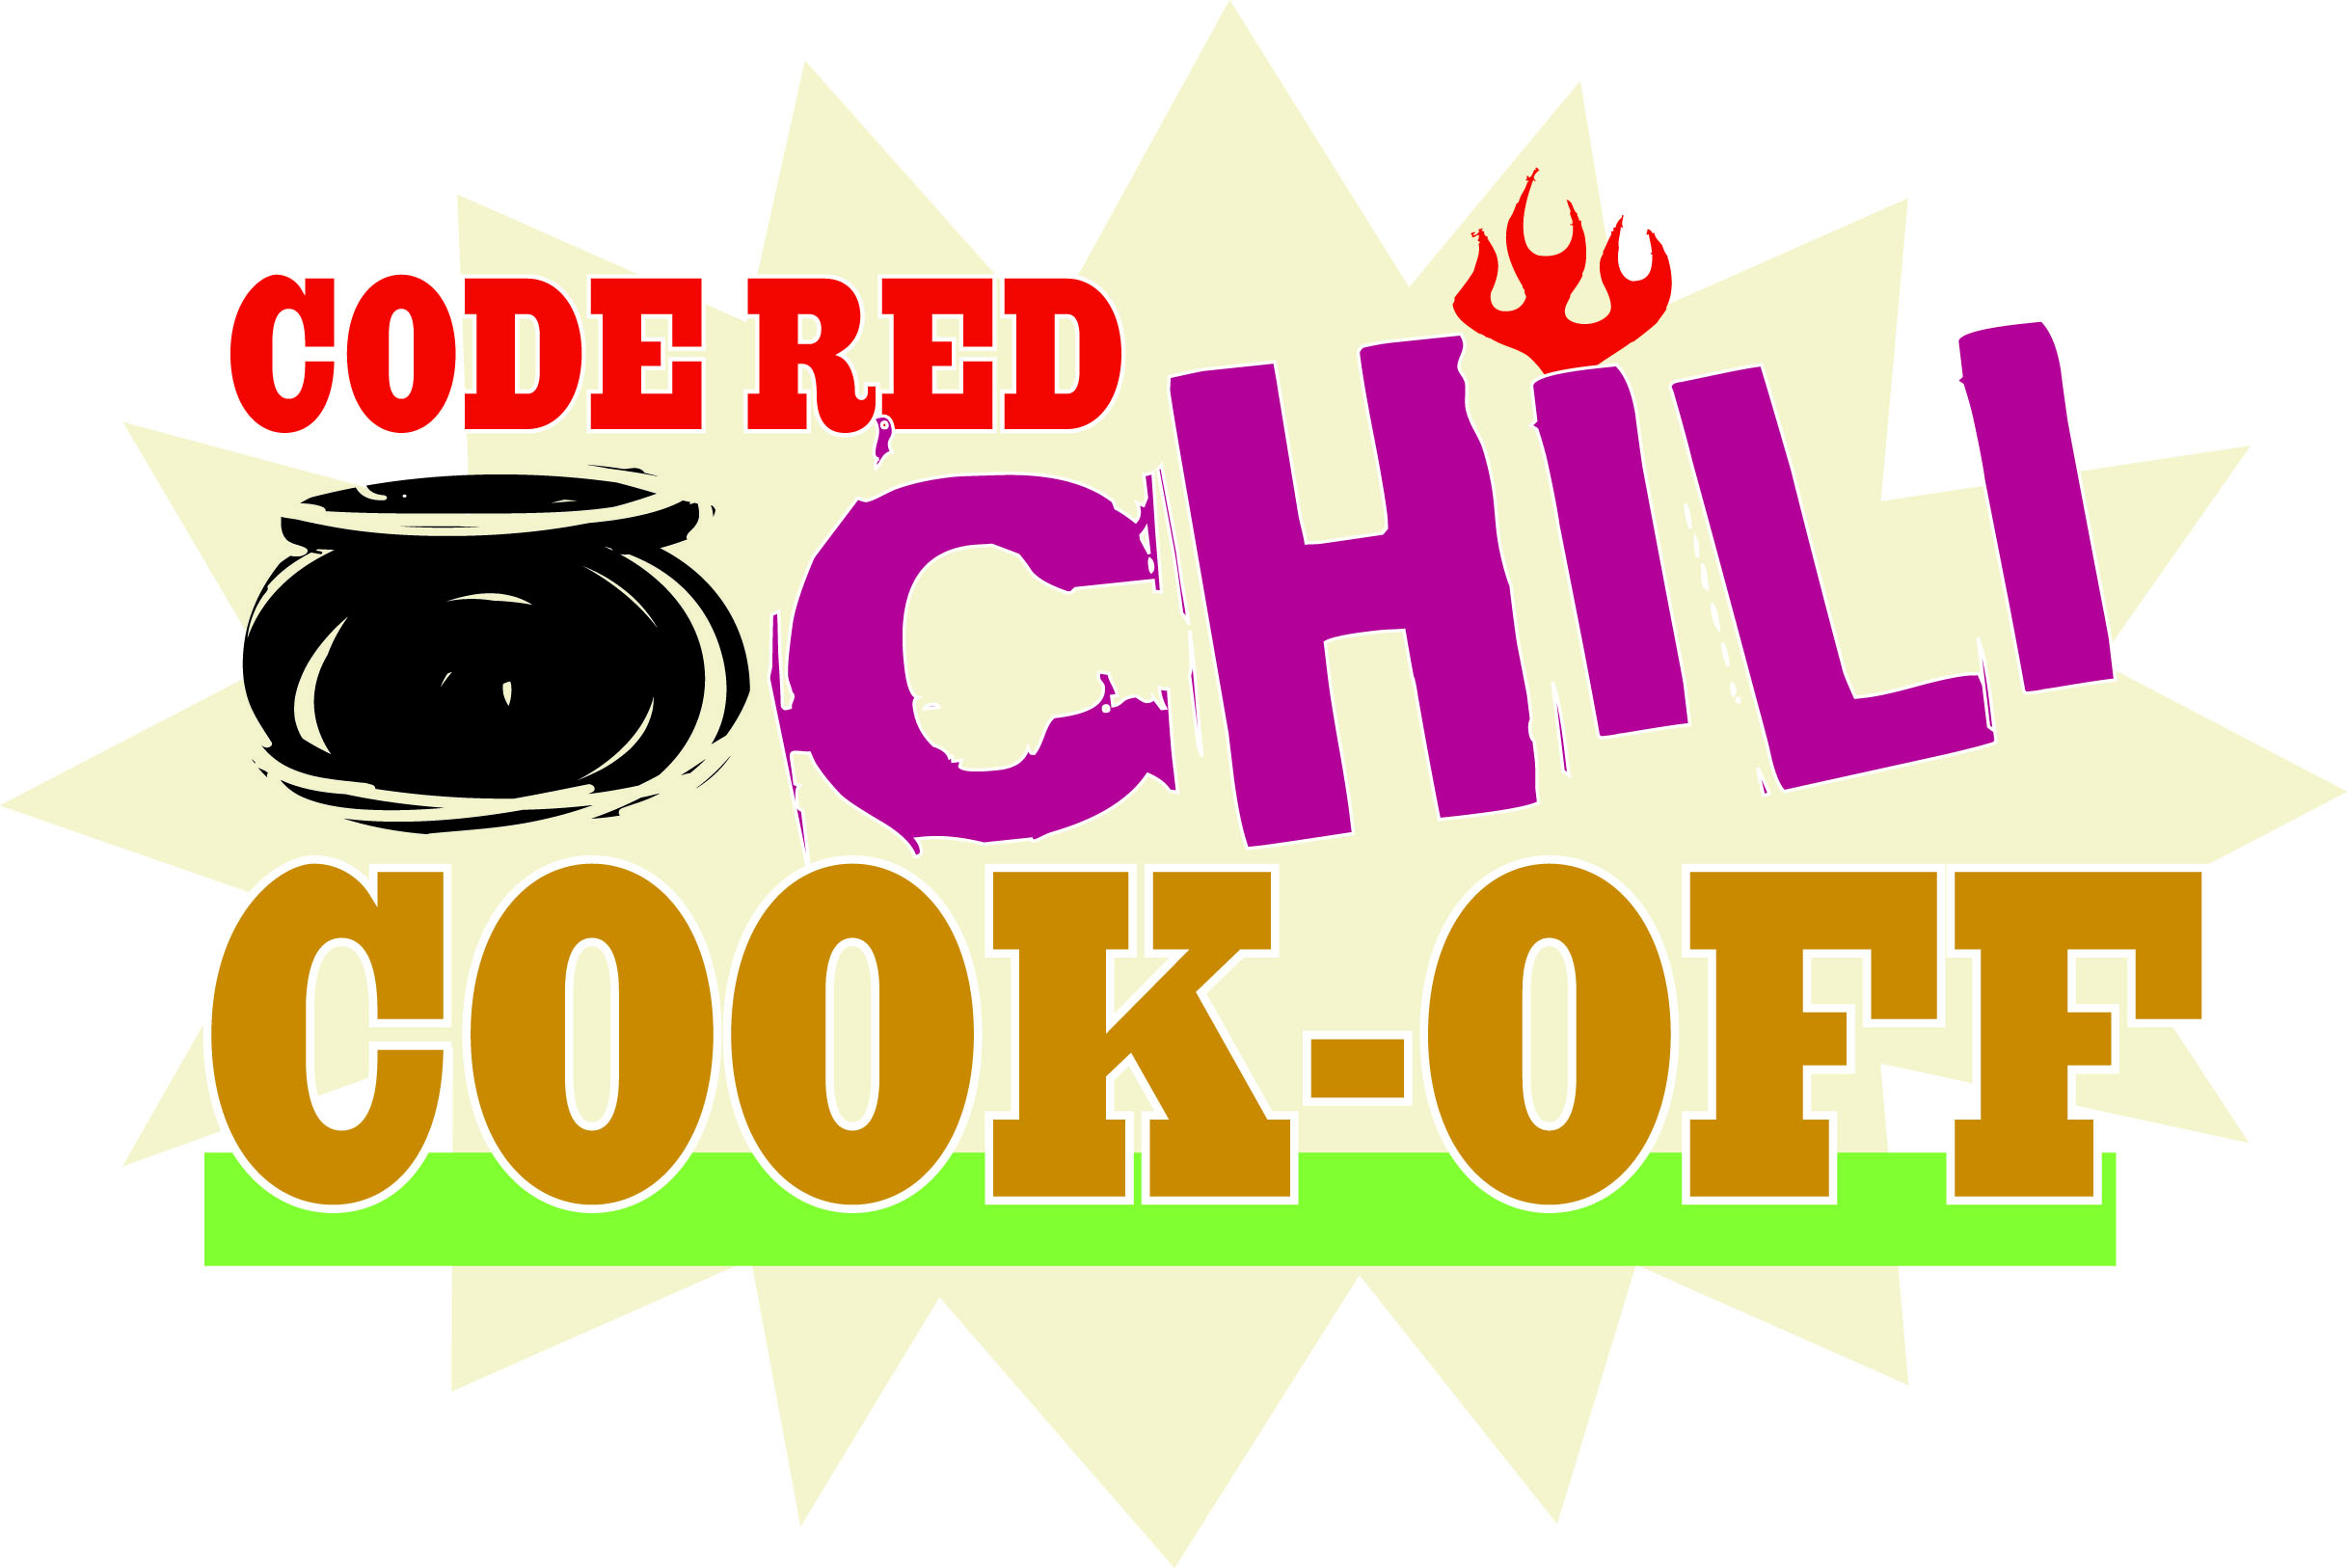 Code Red Chili Cook-off set for March 28th